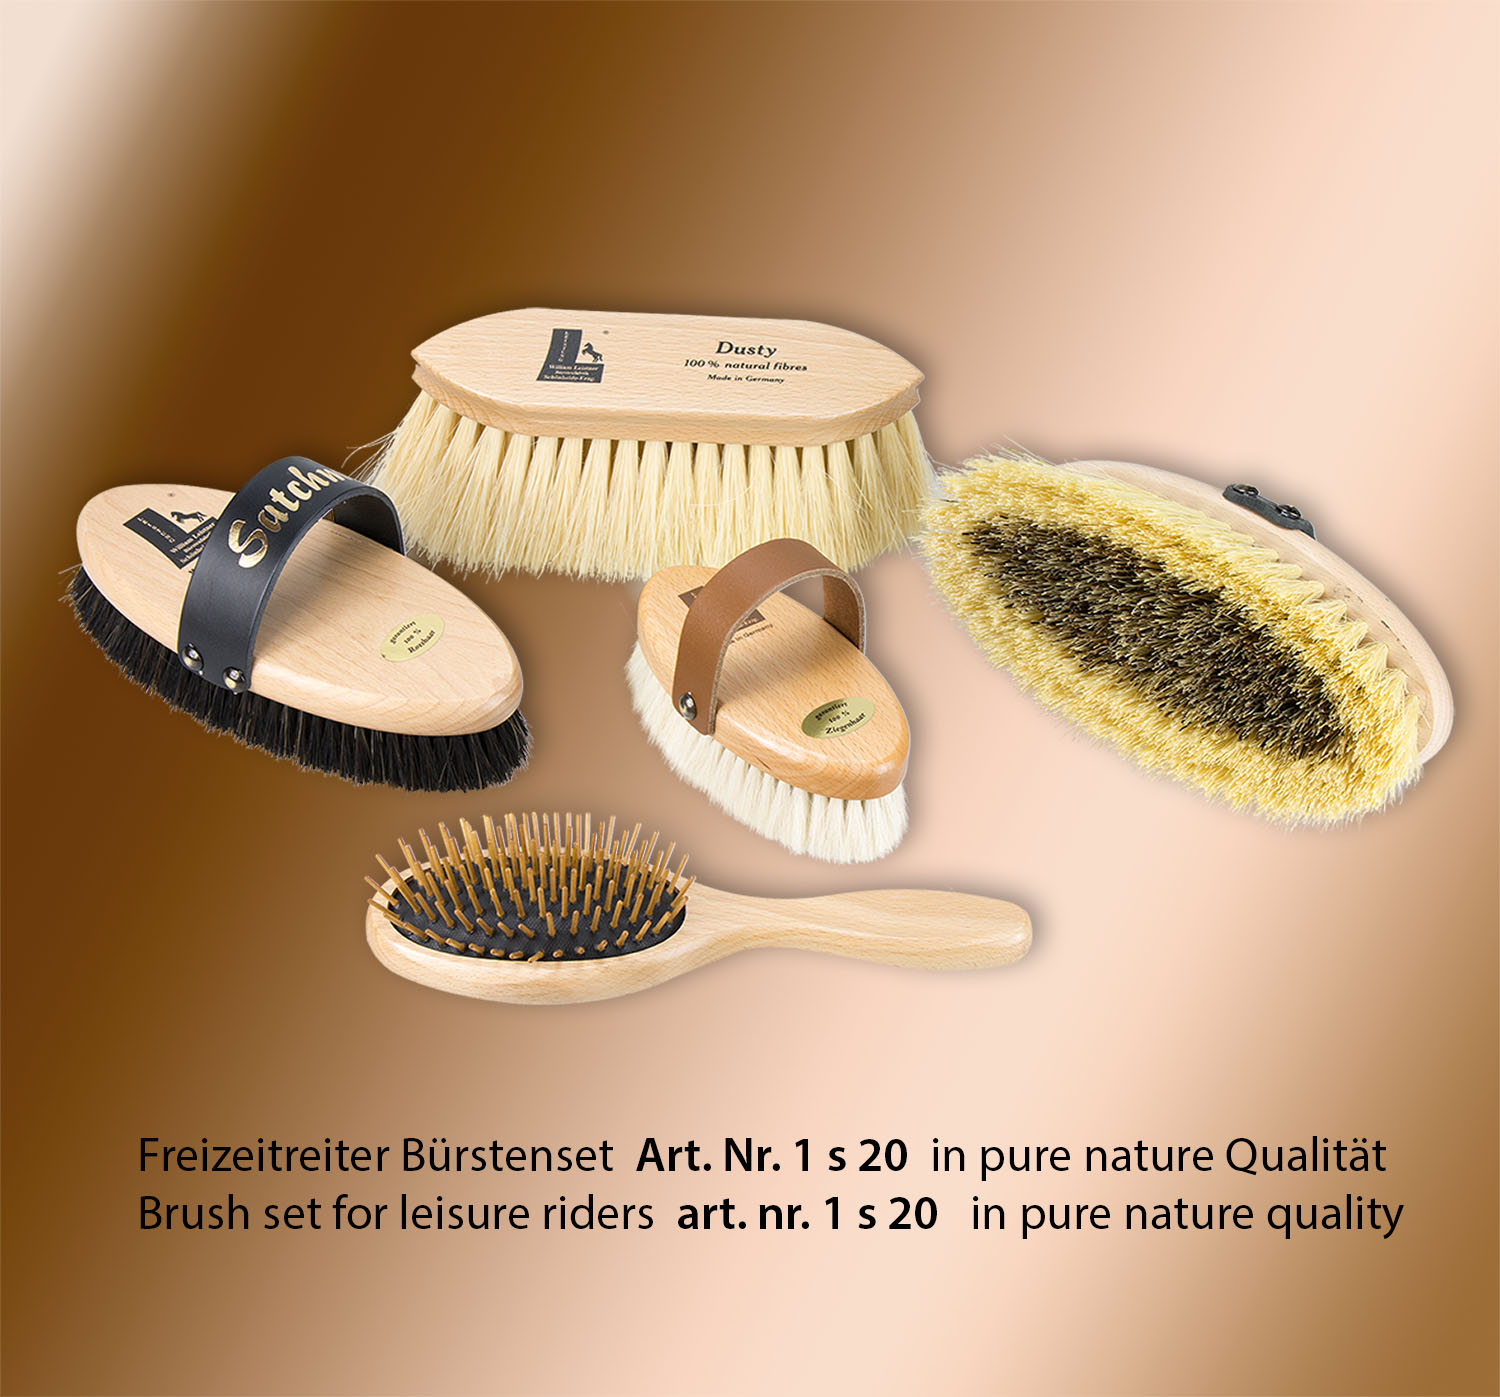 Bioseries horse grooming set